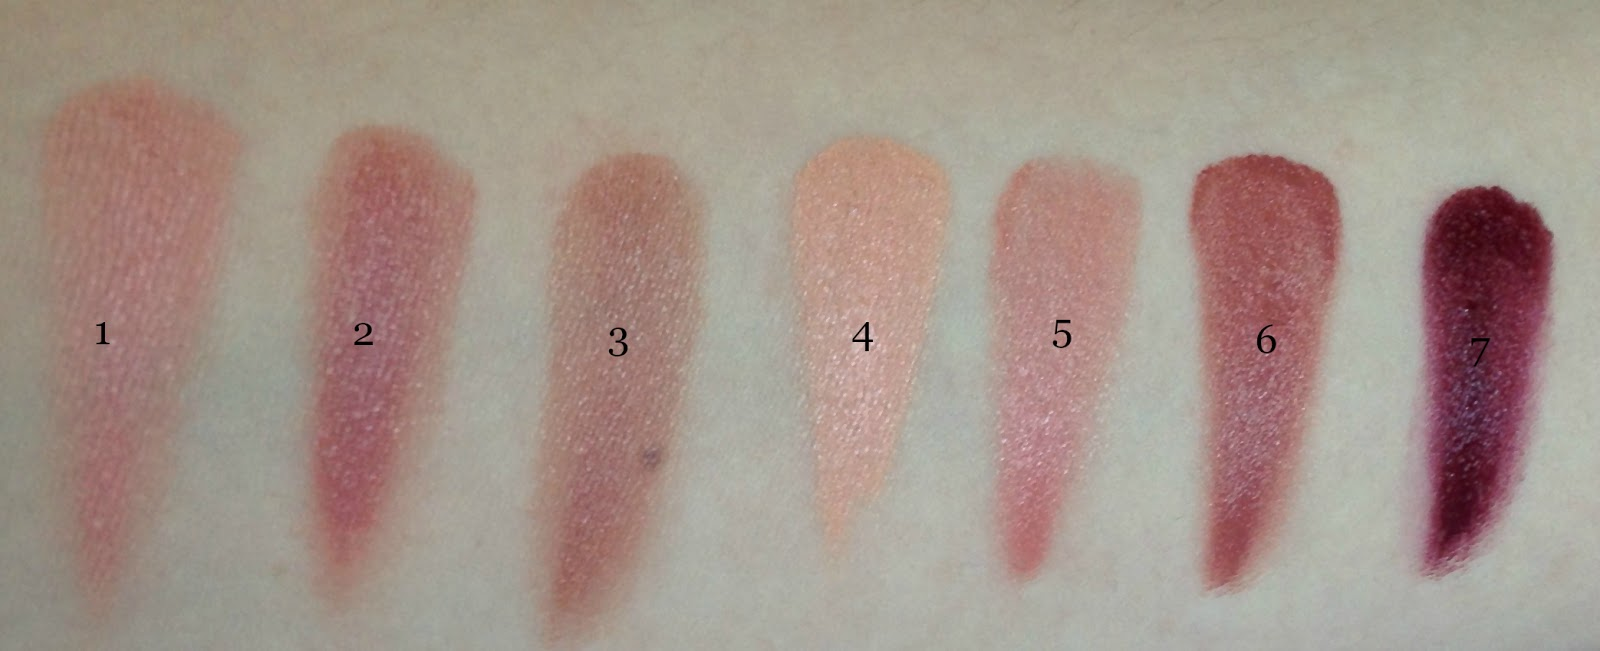 Nude Lips 28 Color Lipstick Palette by BH Cosmetics #4